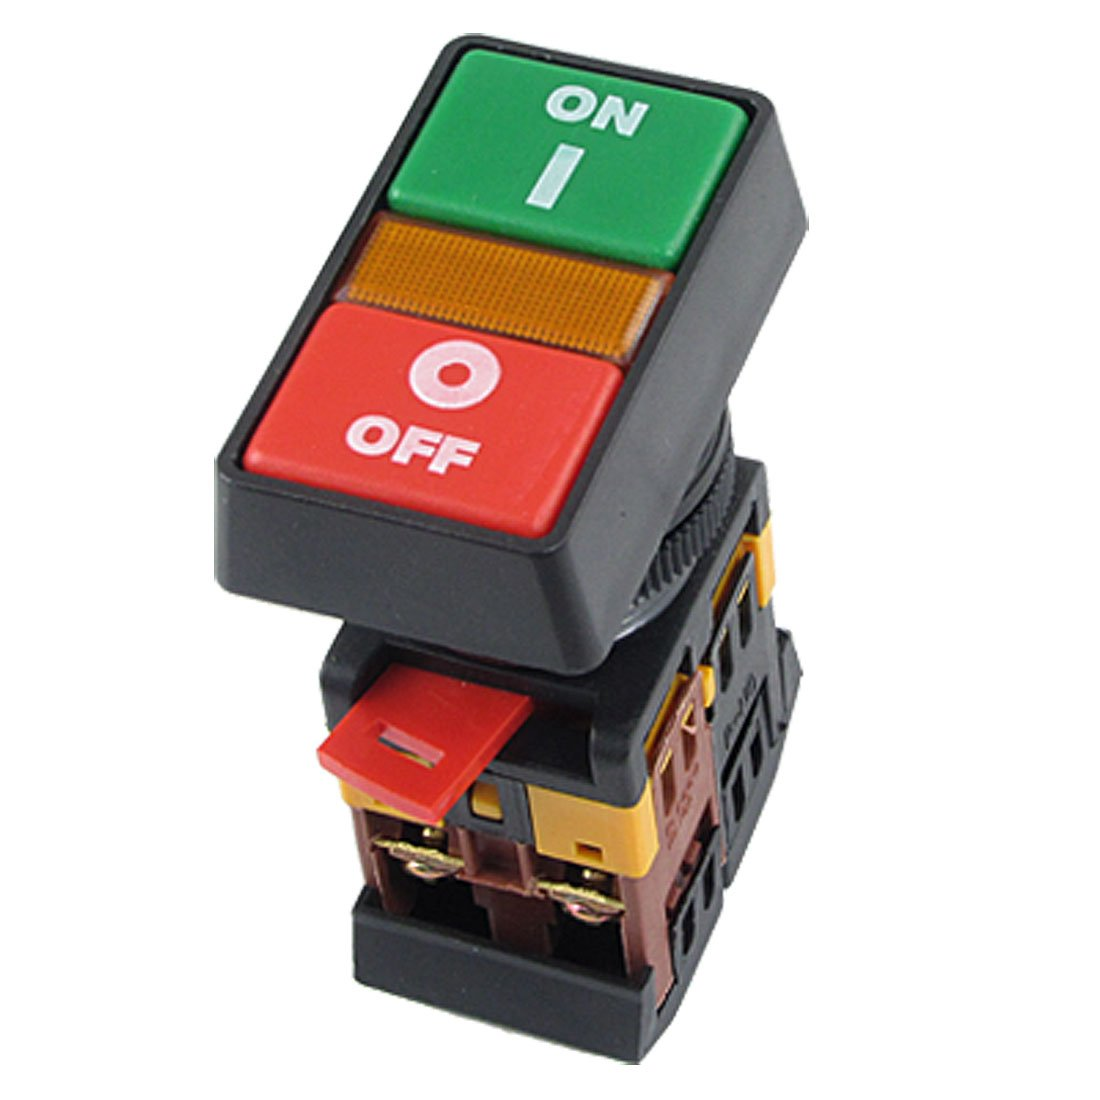 Lhll On Off Start Stop Push Button W Light Indicator Momentary Switch Red Green Power